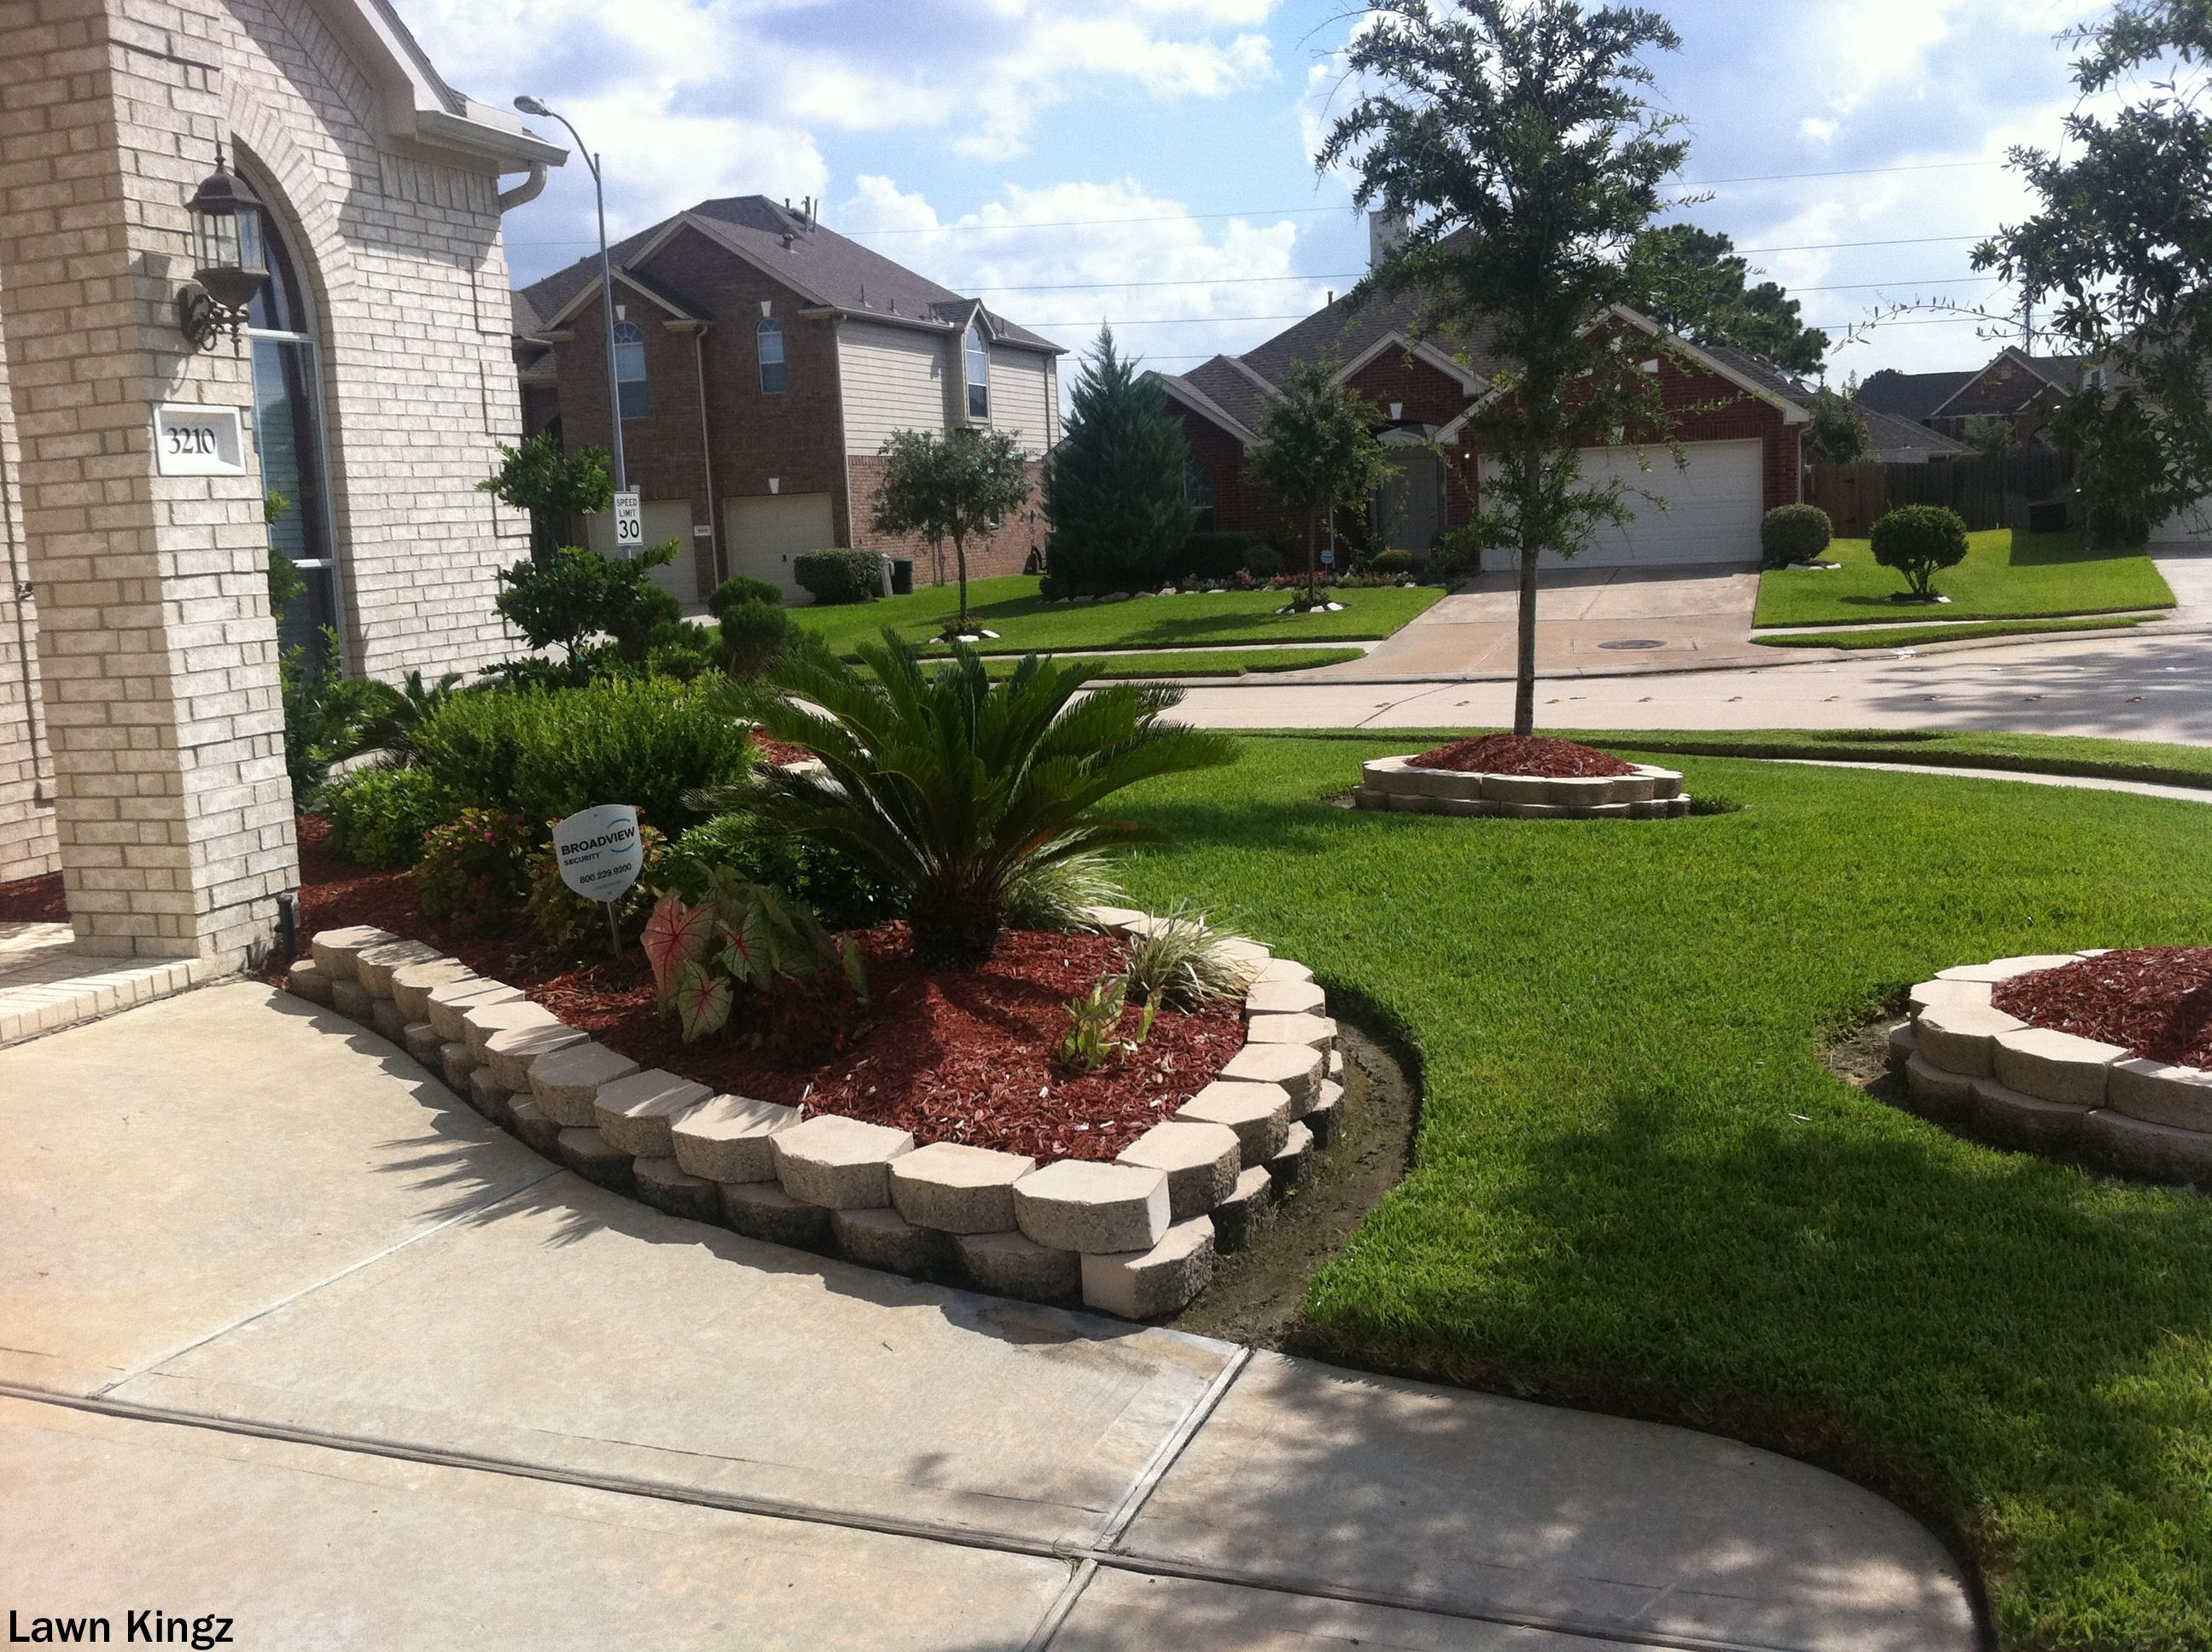 cement driveways and curbing blend very well with beautiful lawns